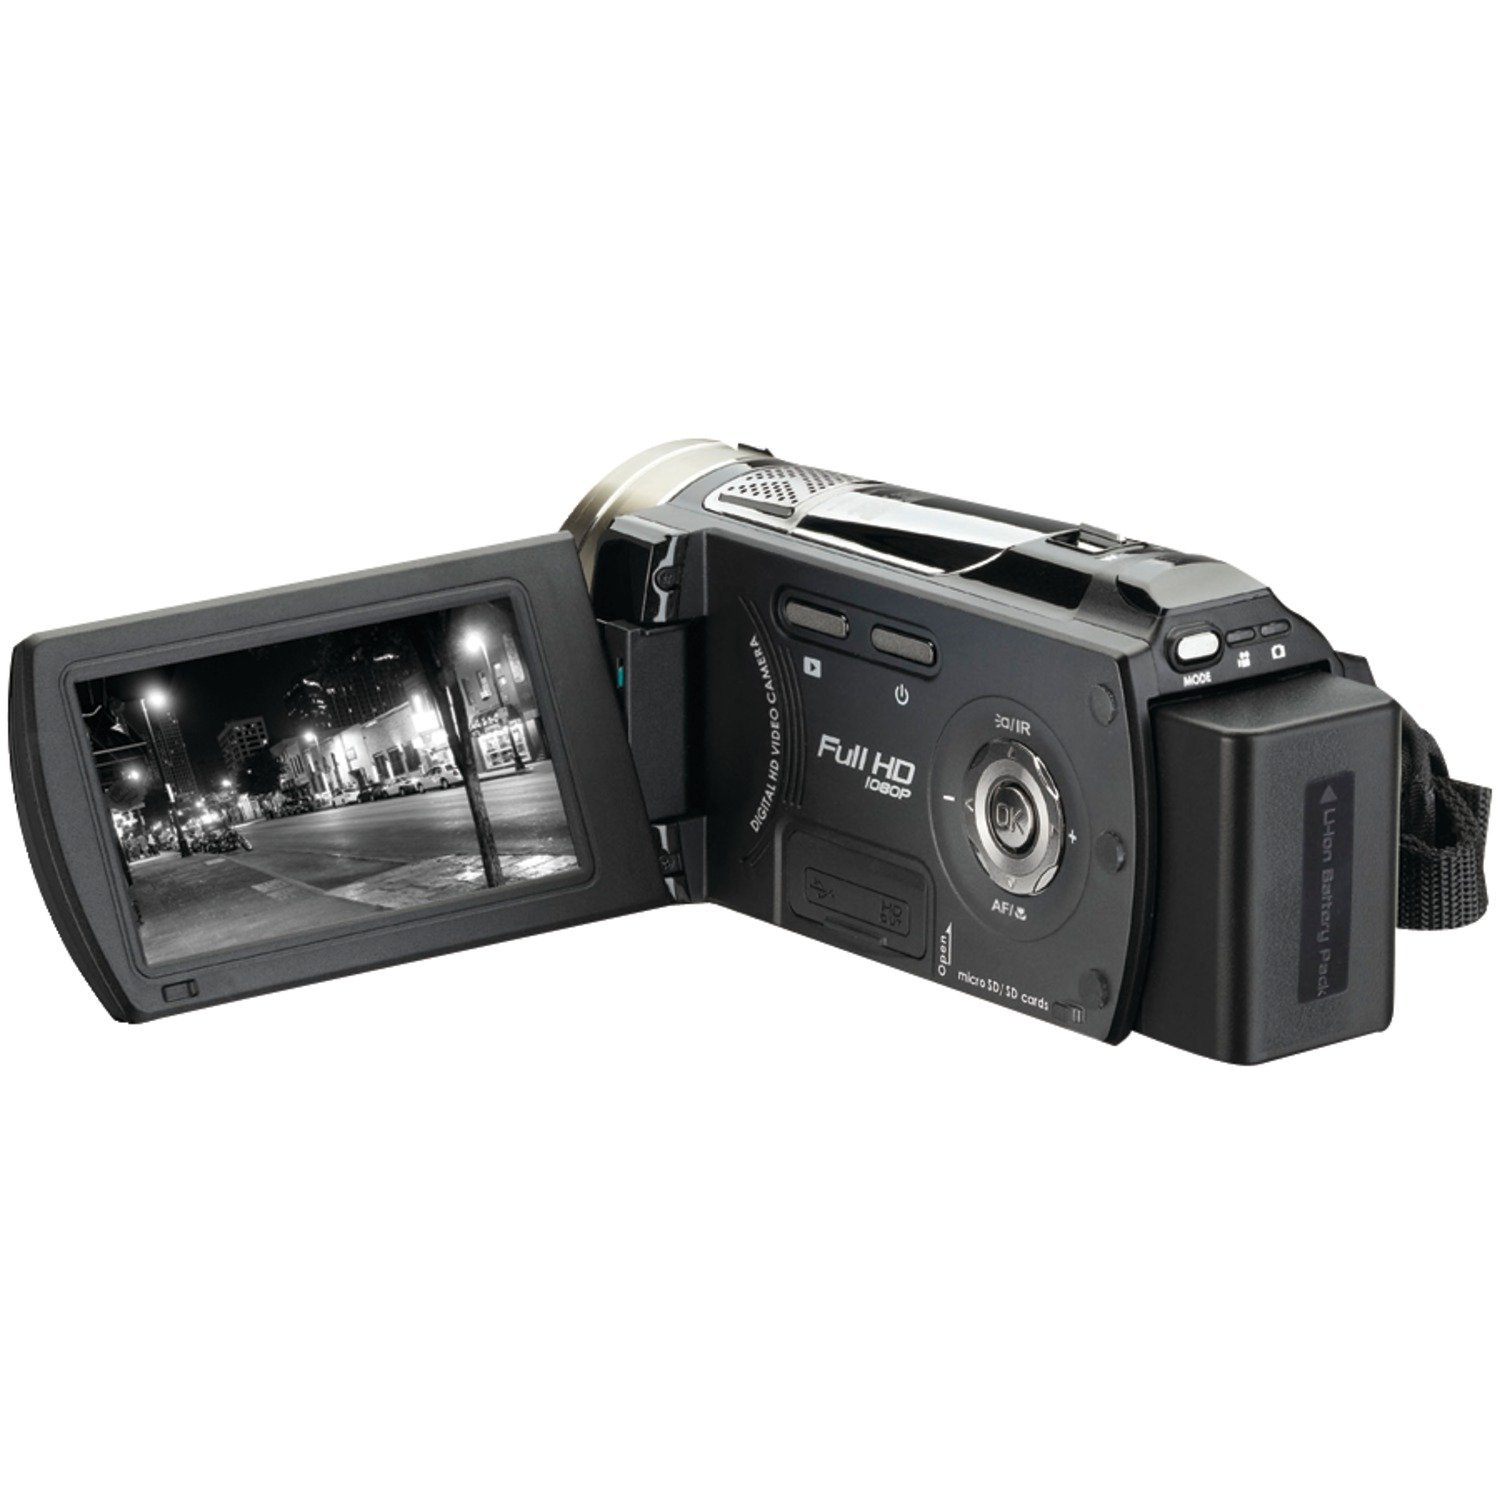 Harga Sony Hdr Pj410 Be Hd Handycam With Built In Projector Pal Pj675 Full Camcorder Cameras Amp Camcorders T 71zjy3n